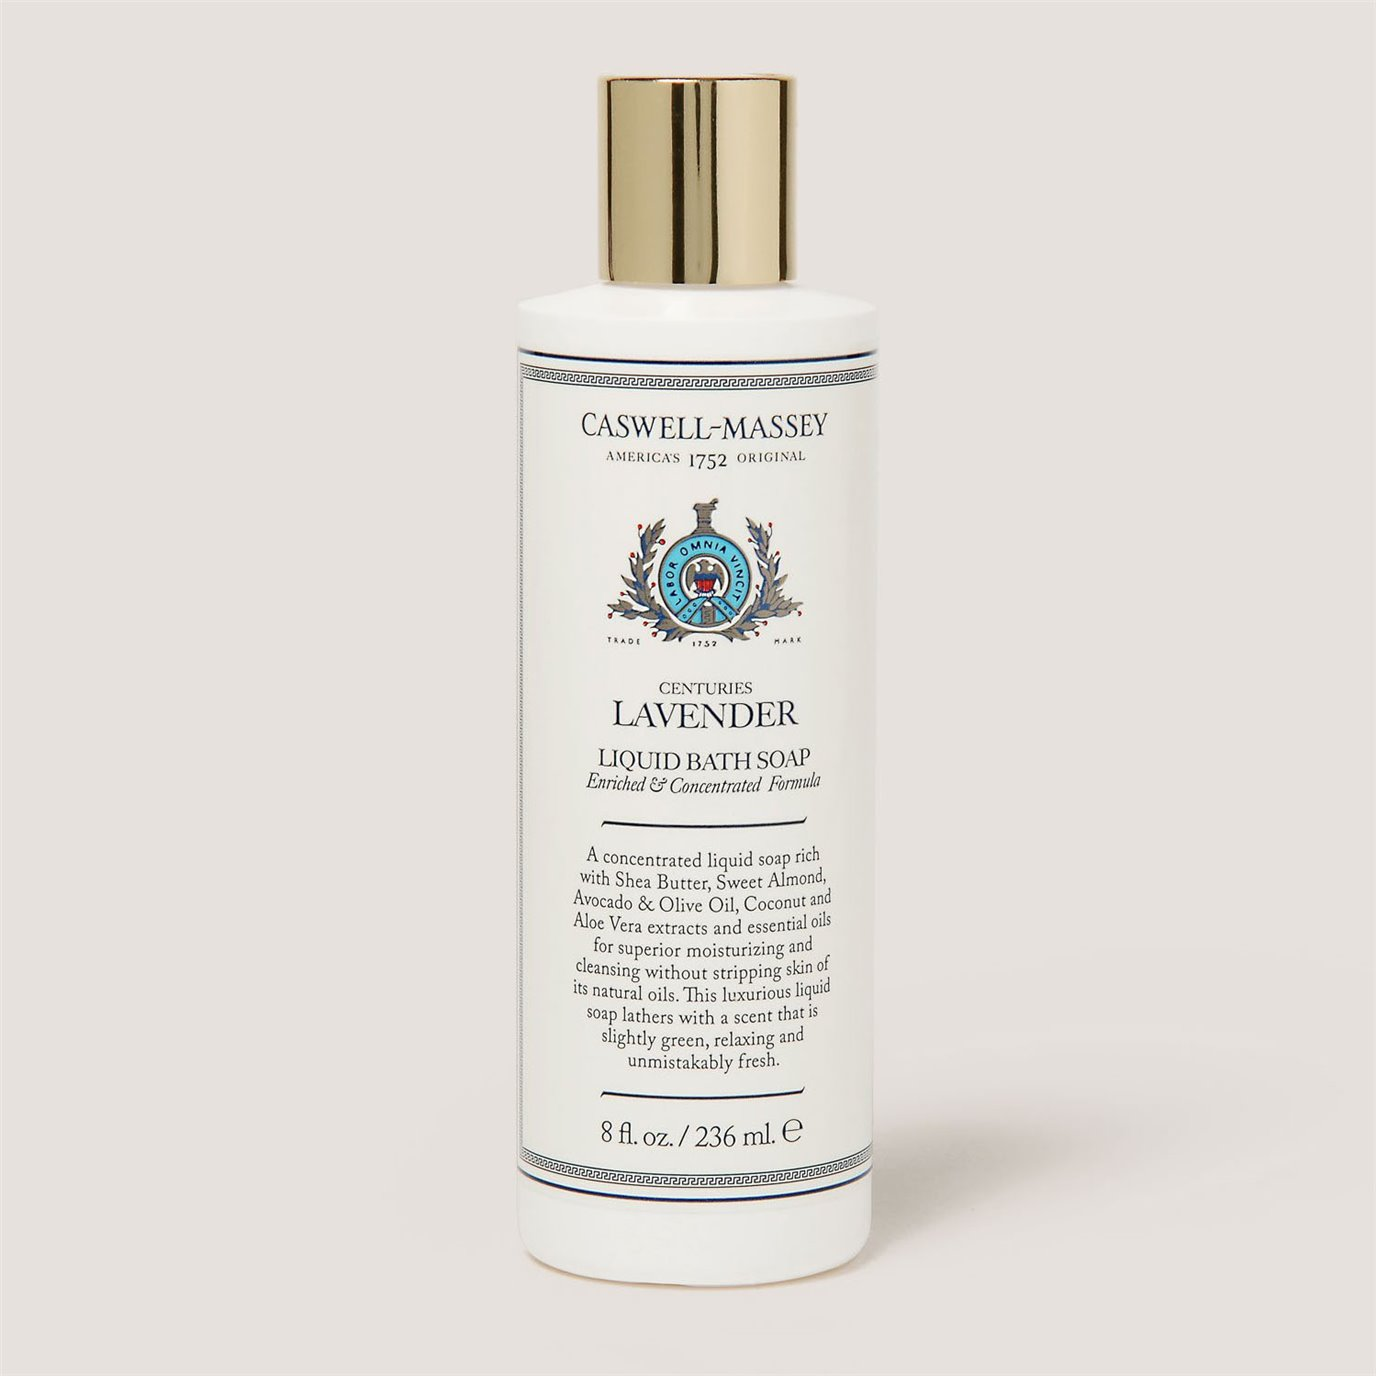 Caswell-Massey Lavender Liquid Bath Soap